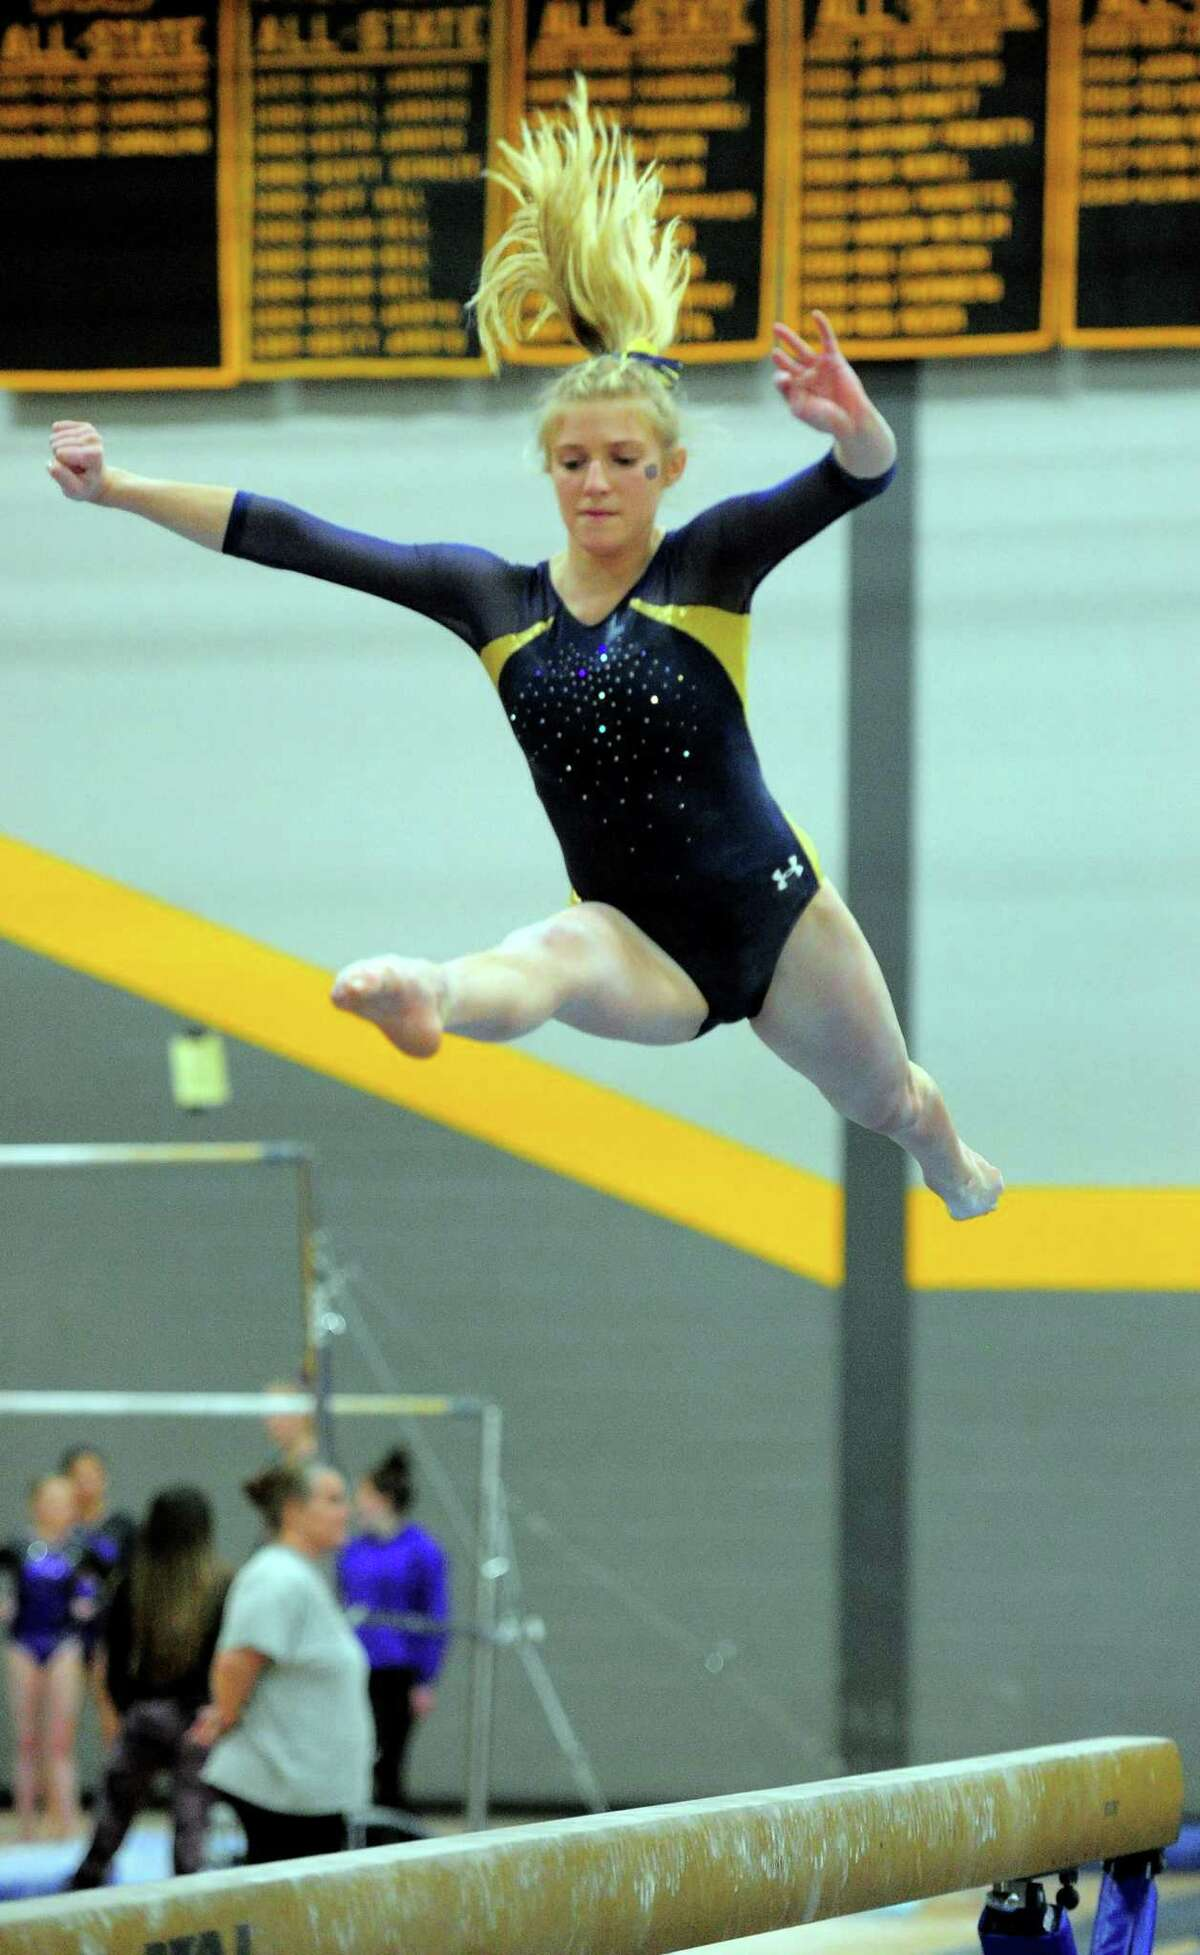 Woodstock Academy's Lydia Taft competes on the balance beam during CIAC Class S Gymnastics Championship action in Milford, Conn., on Saturday Feb. 23, 2019.